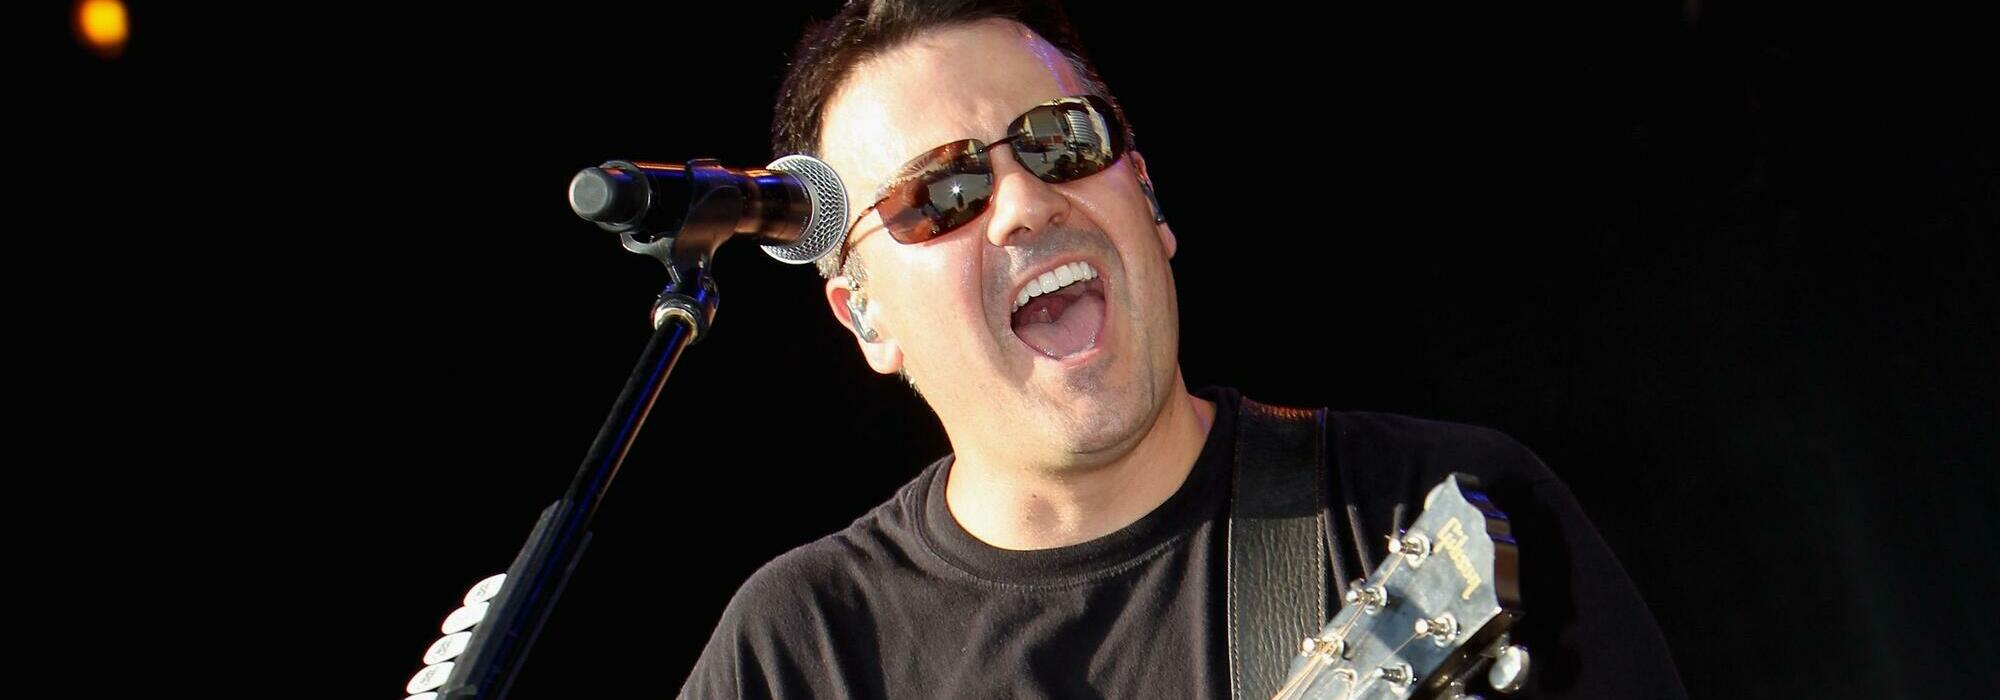 A Roger Creager live event